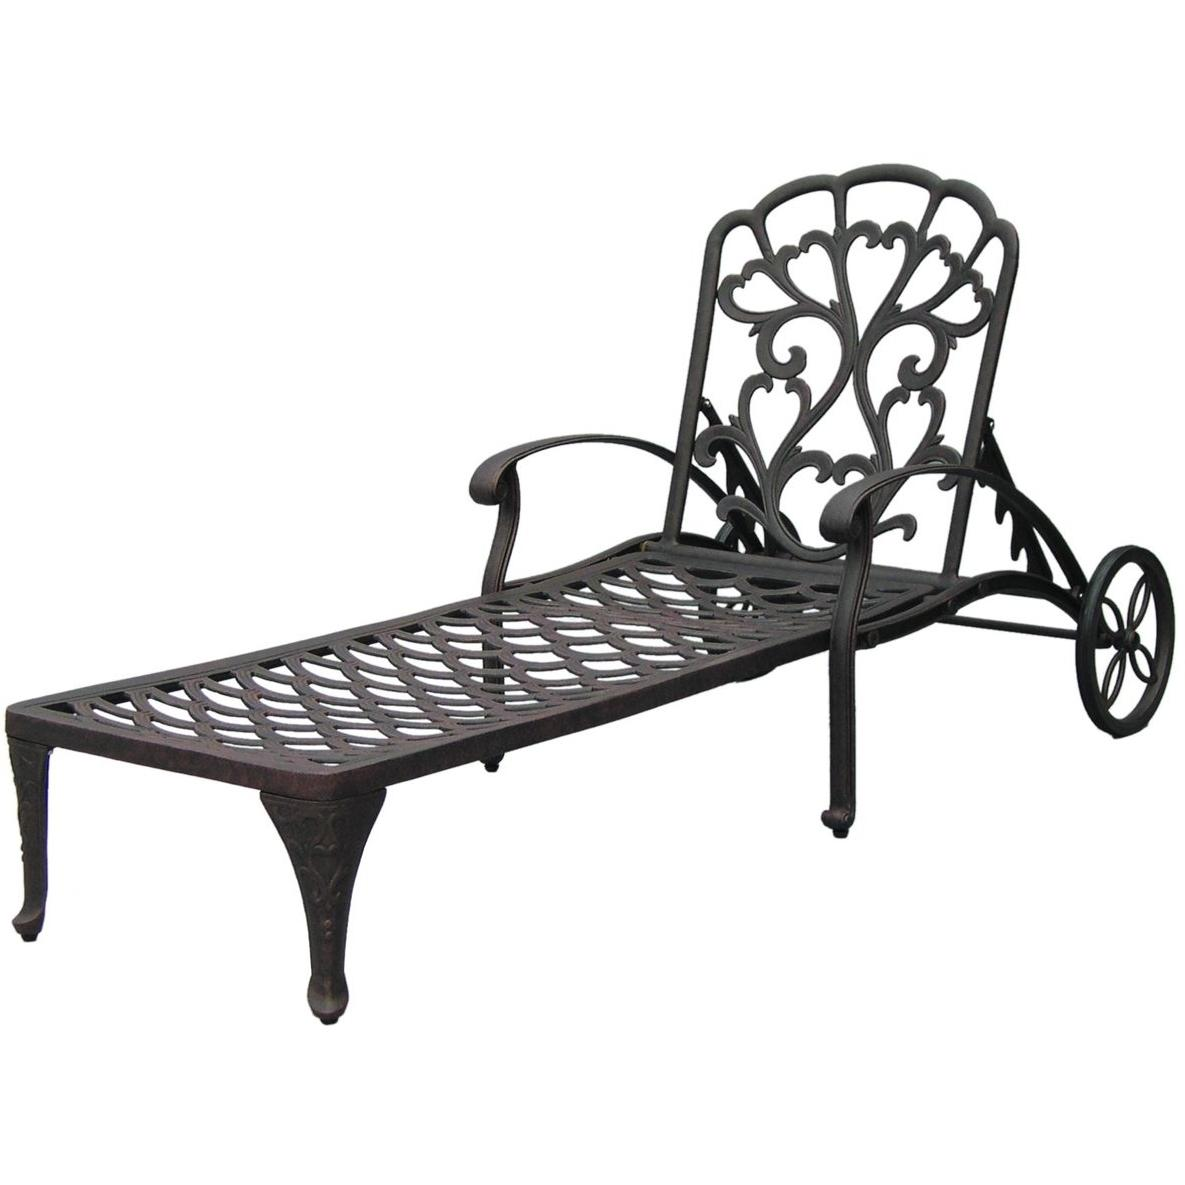 Darlee Catalina Cast Aluminum Outdoor Patio Chaise Lounge With Cushions - Antique Bronze